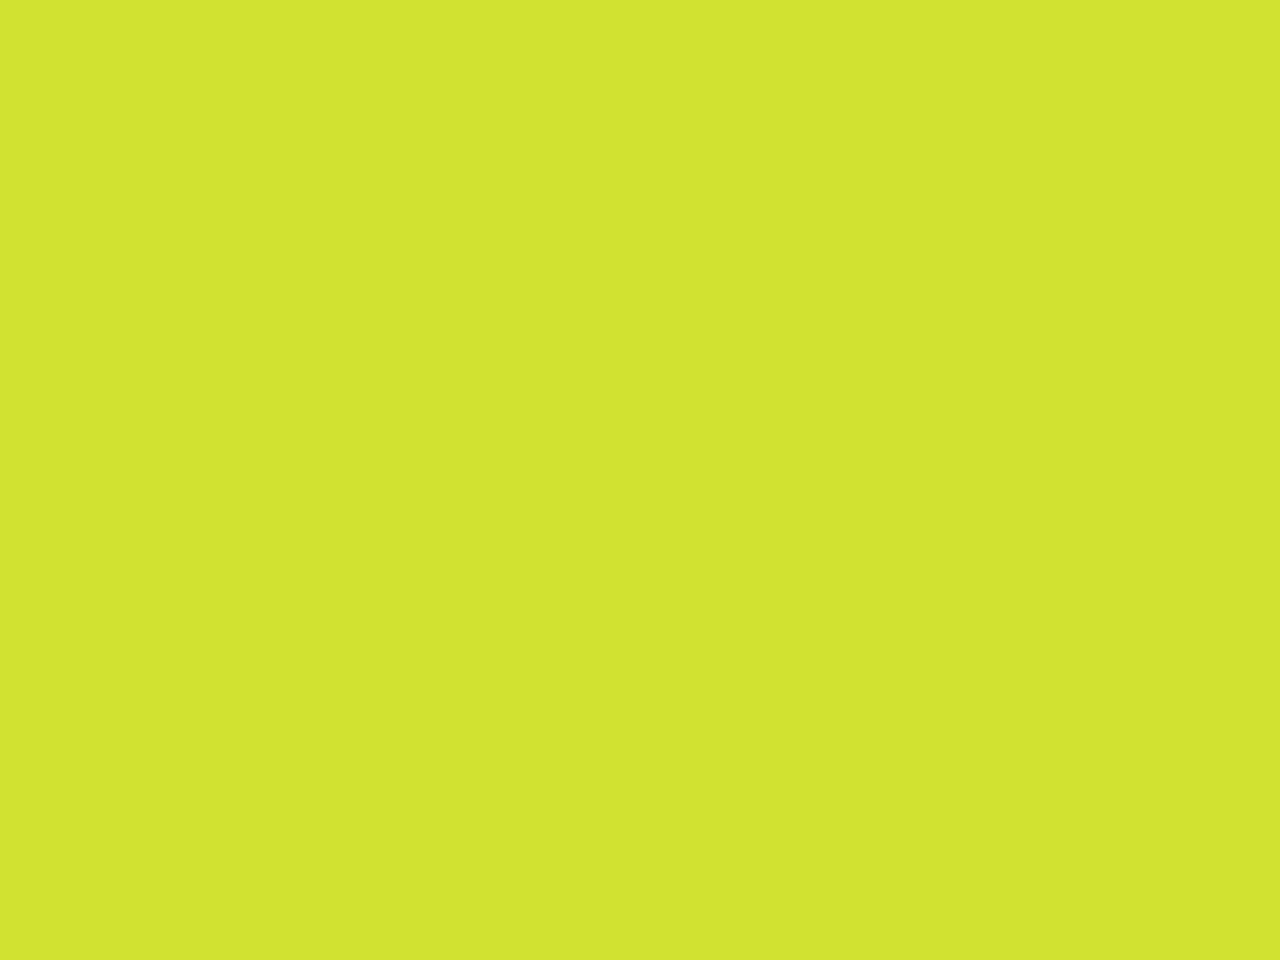 1280x960 Pear Solid Color Background